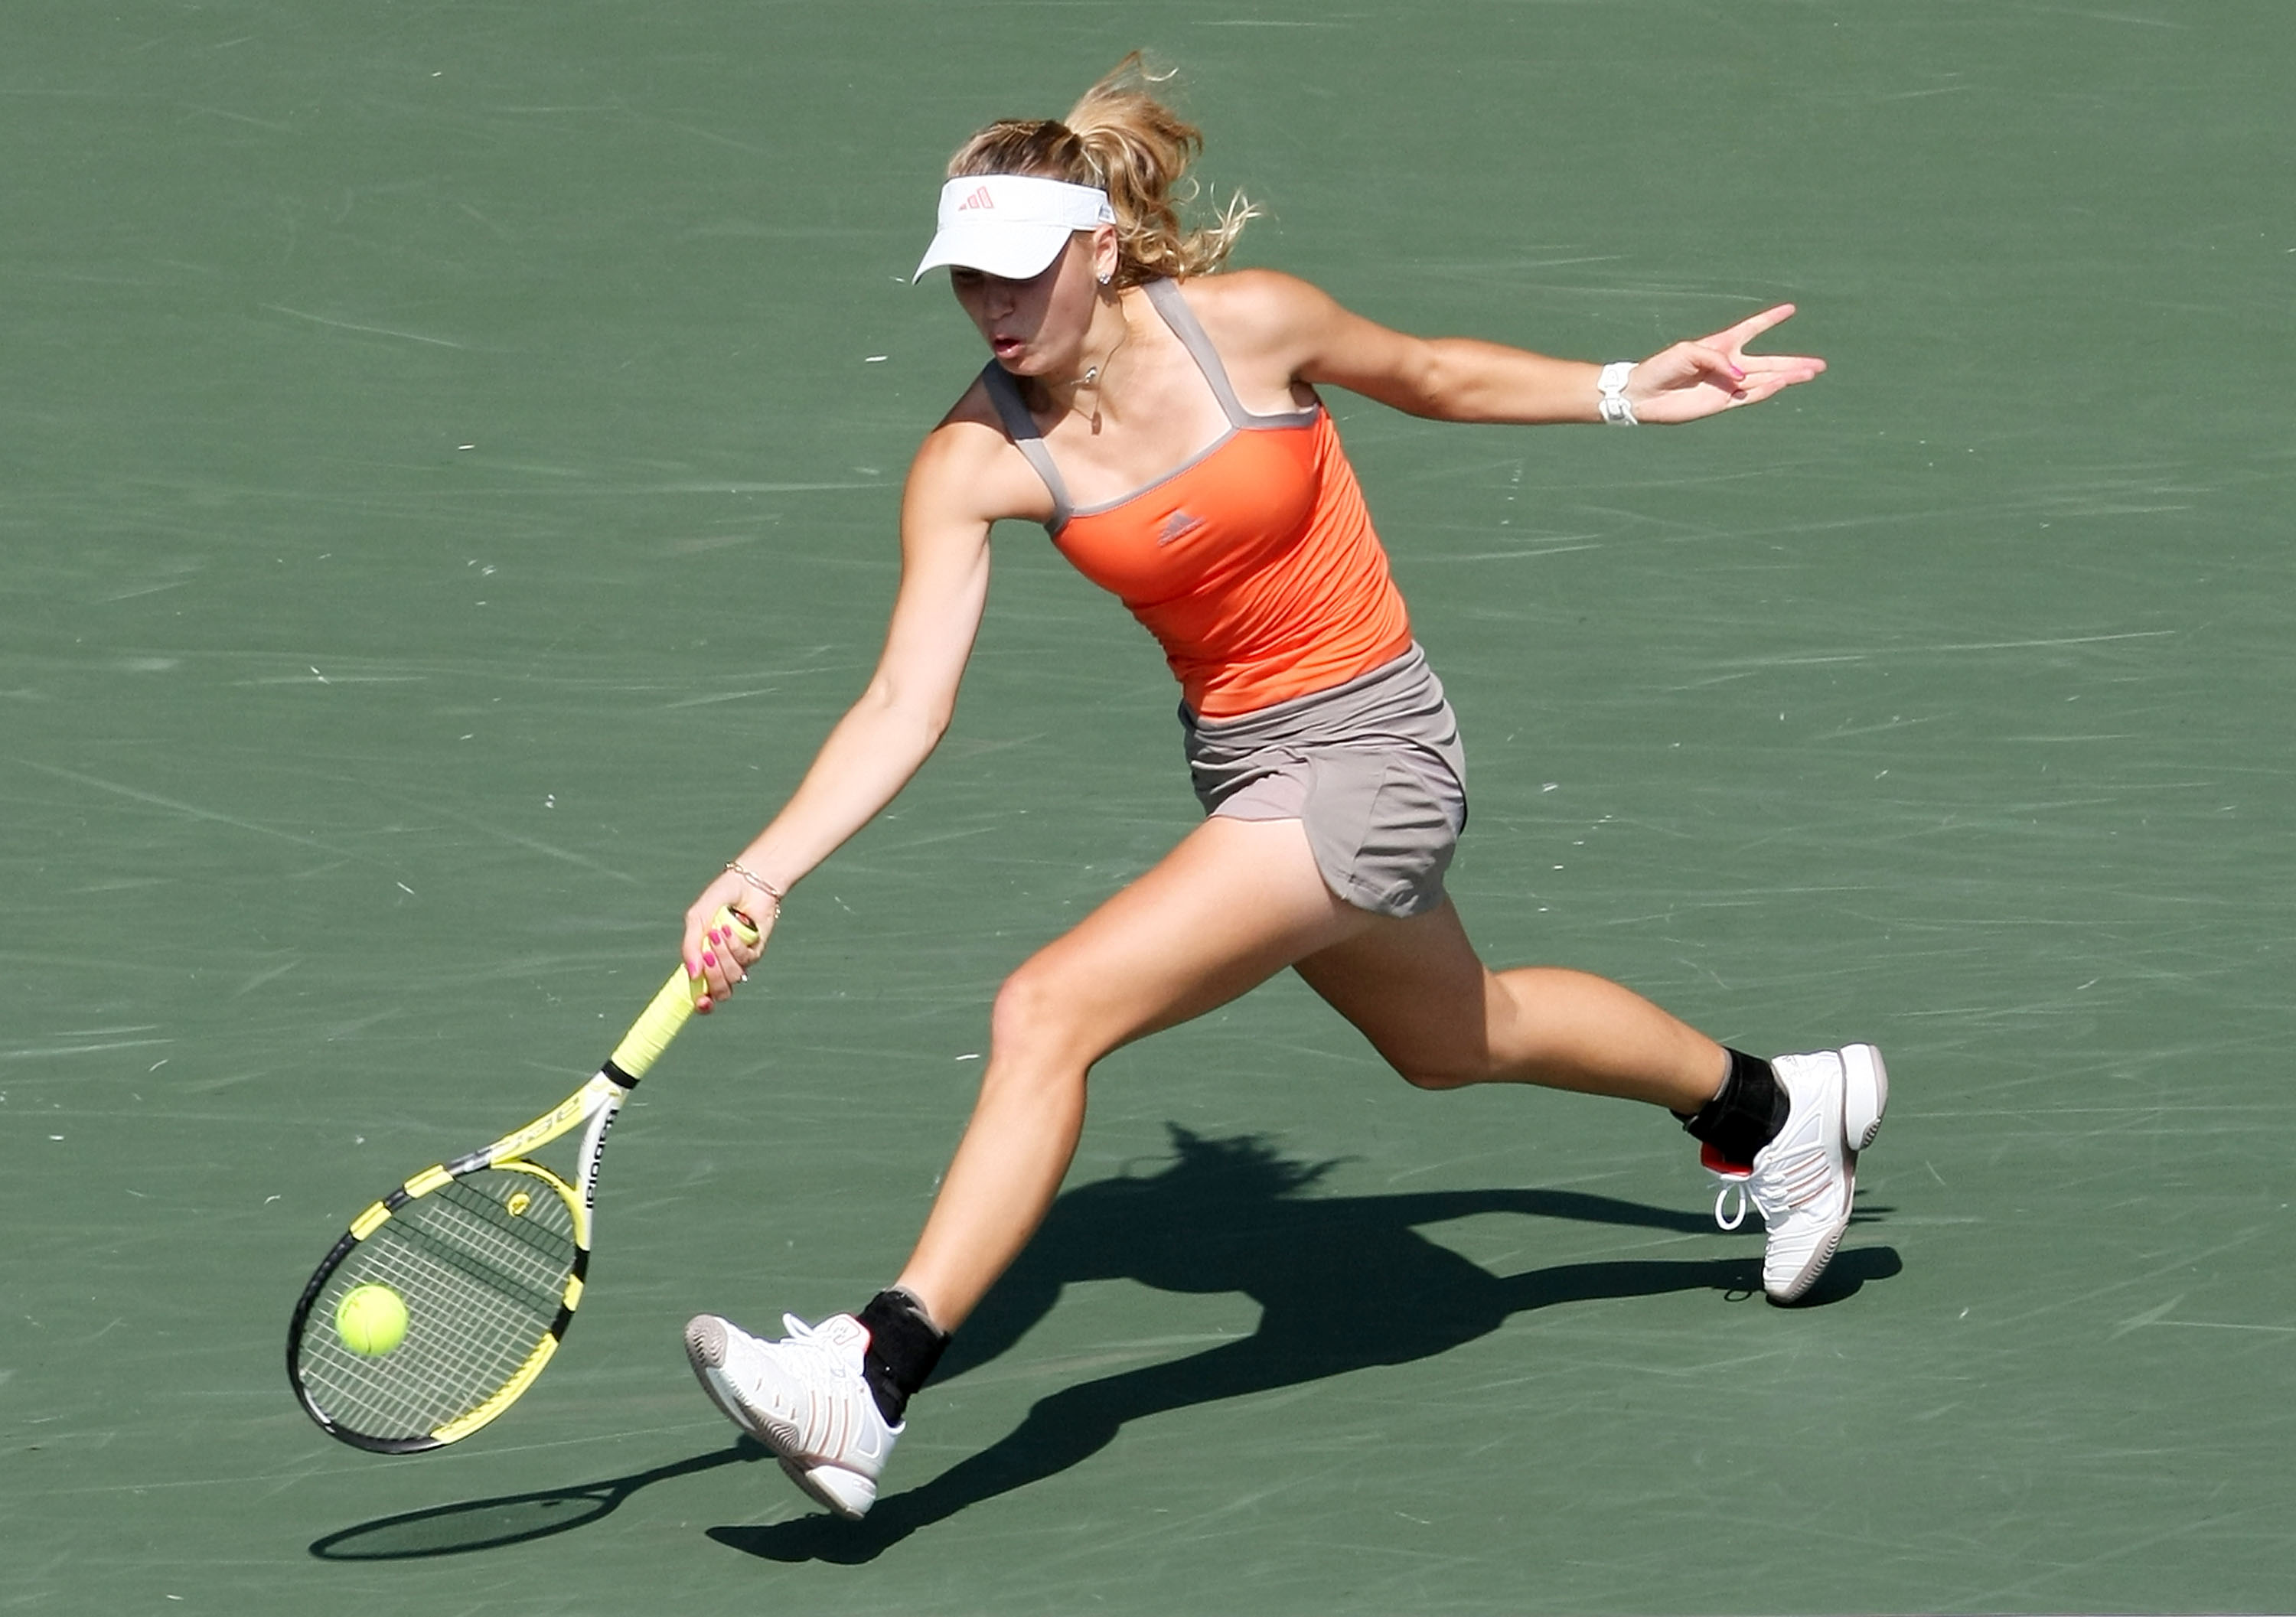 I had a soft spot for Wozniacki's big black ankle braces. They looked like ski boots, which was appropriate because, you know, Danish.